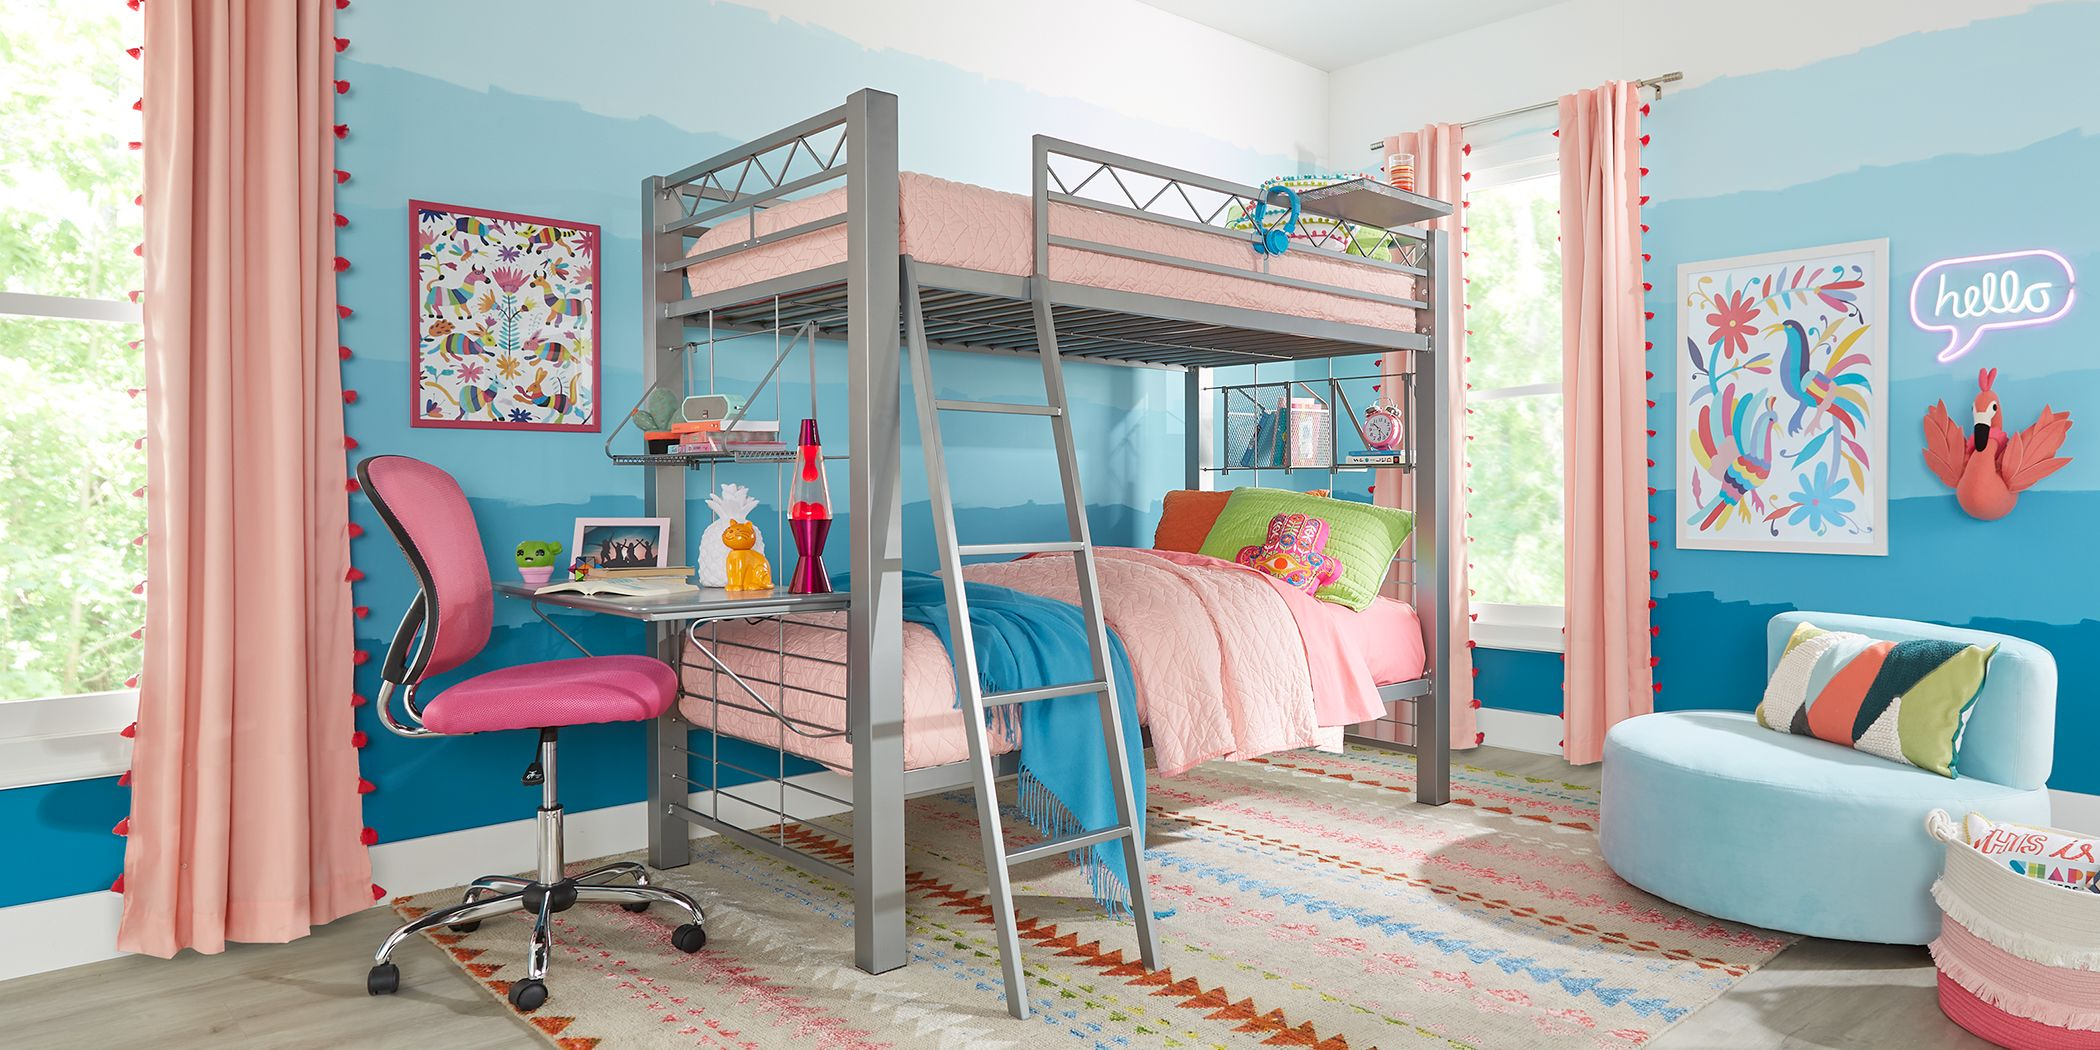 Types Of Bunk Beds Material Construction